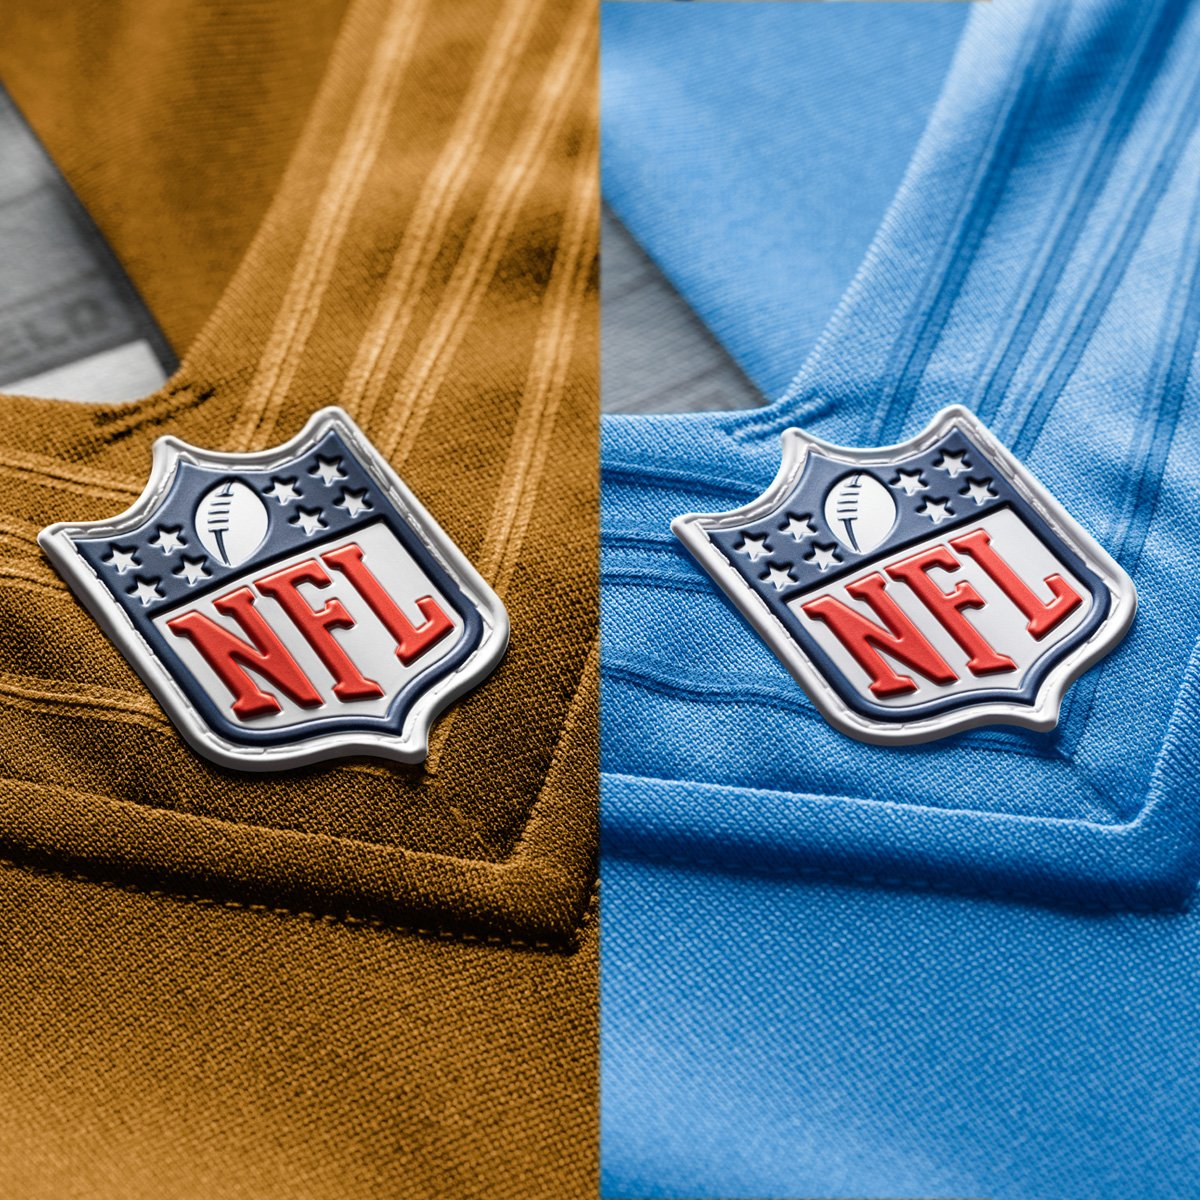 Nike's newest set of NFL Thursday night jerseys are the worst we have seen yet